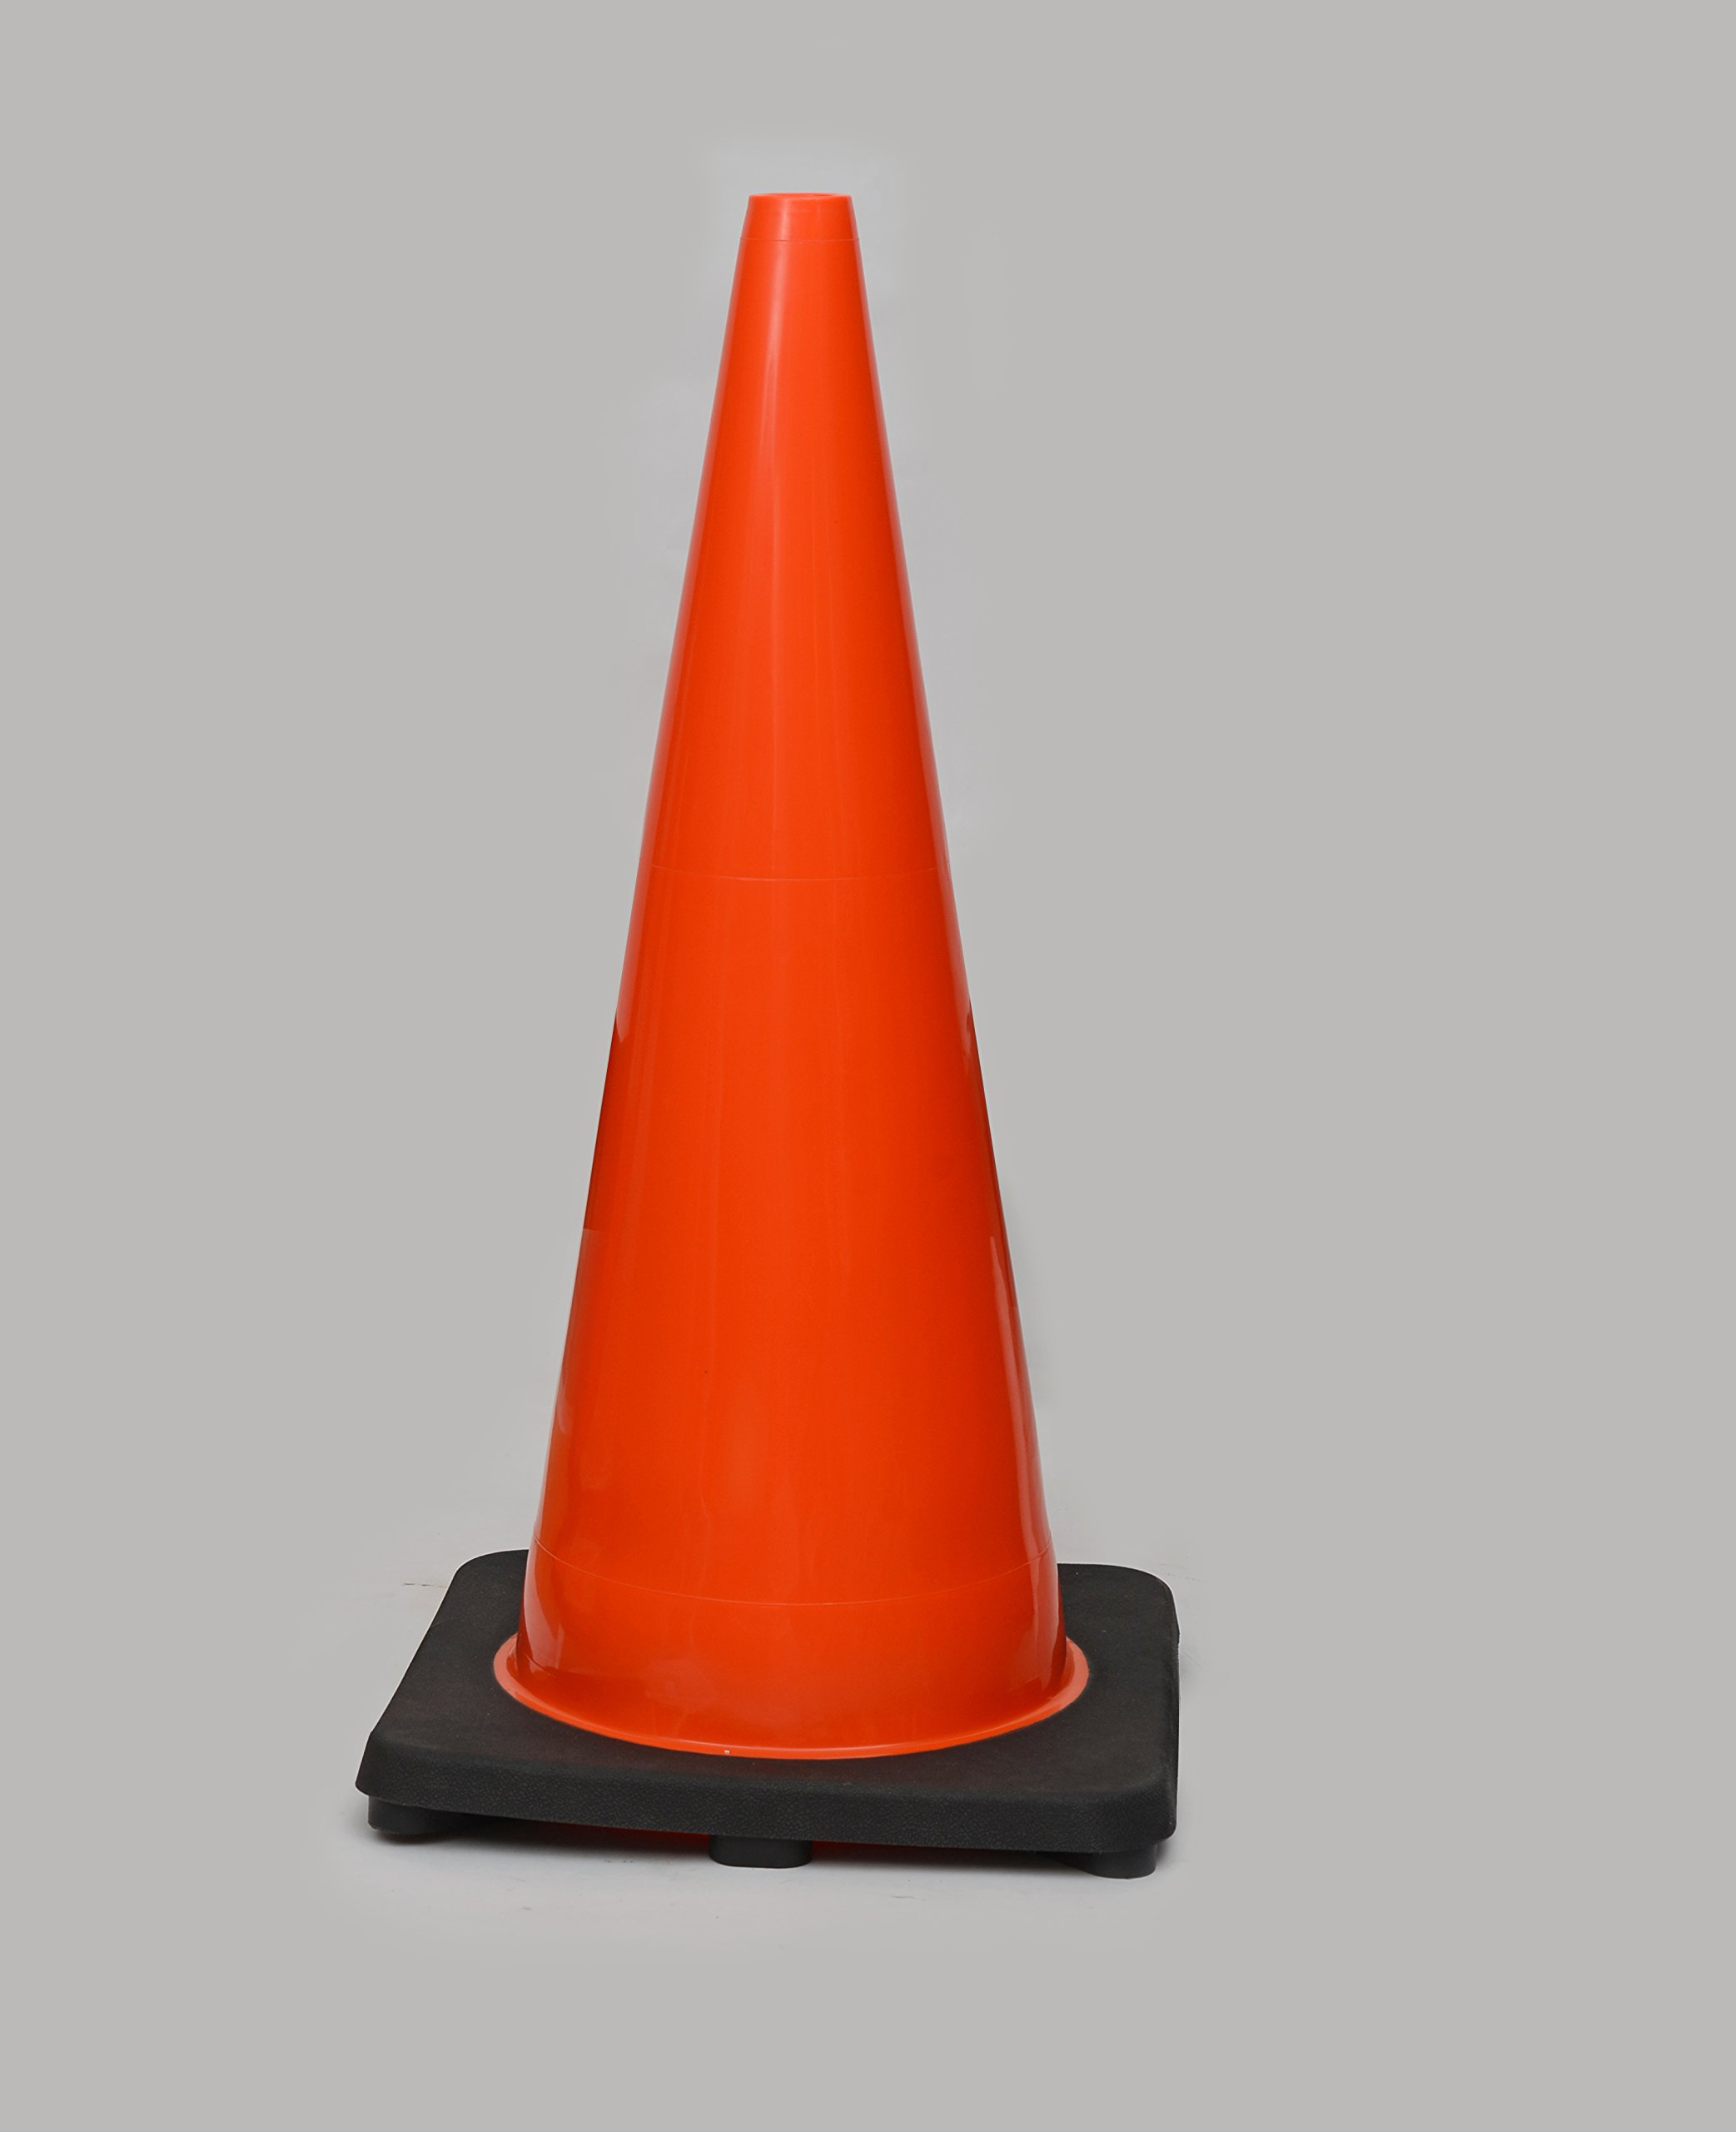 (8 Cones) CJ Safety 28'' Height Orange PVC Traffic Safety Cones With Black Base - No Reflective Collars (Set of 8)